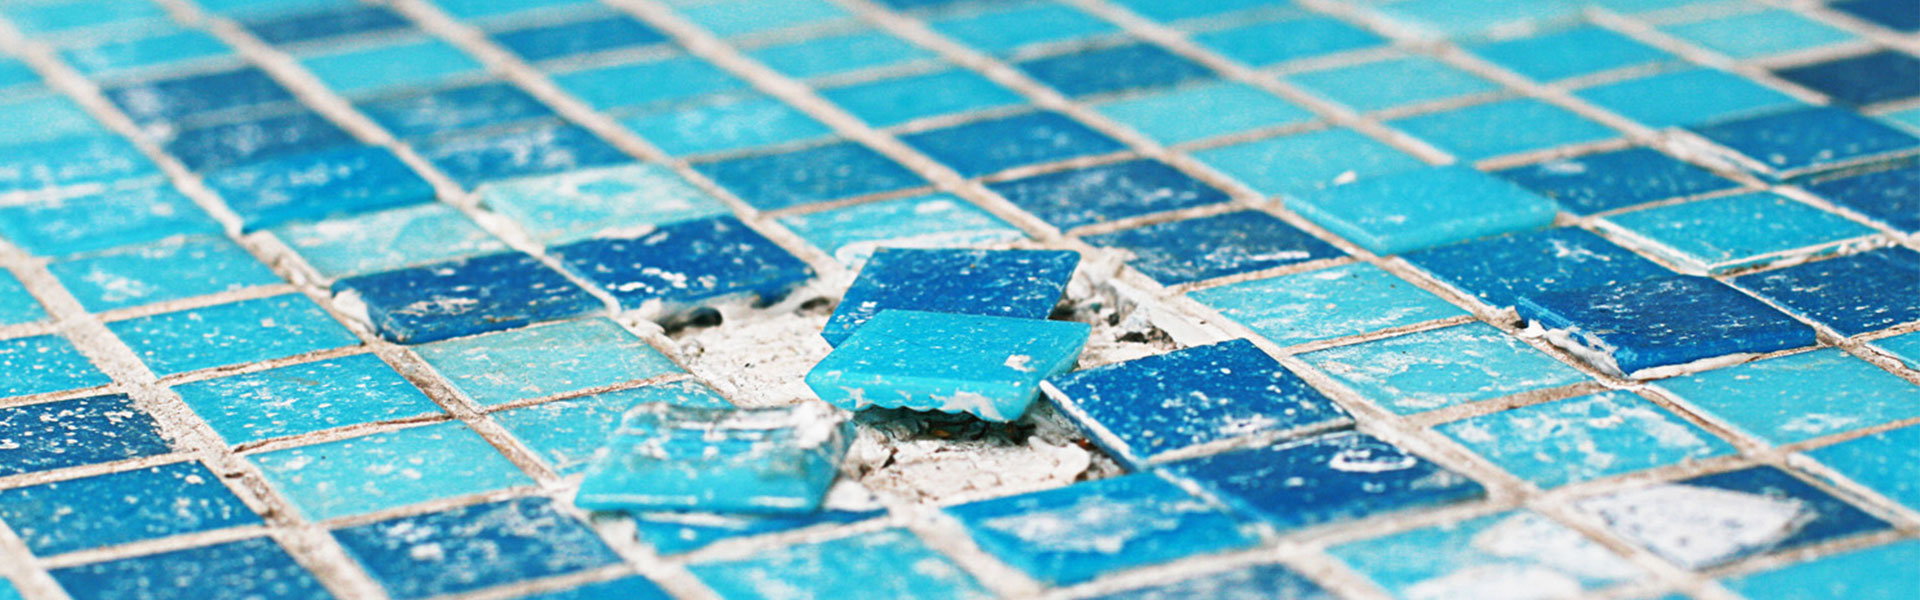 Swimming Pool Service Technician In Texarkana Texas : Swimming pool repair san antonio texas